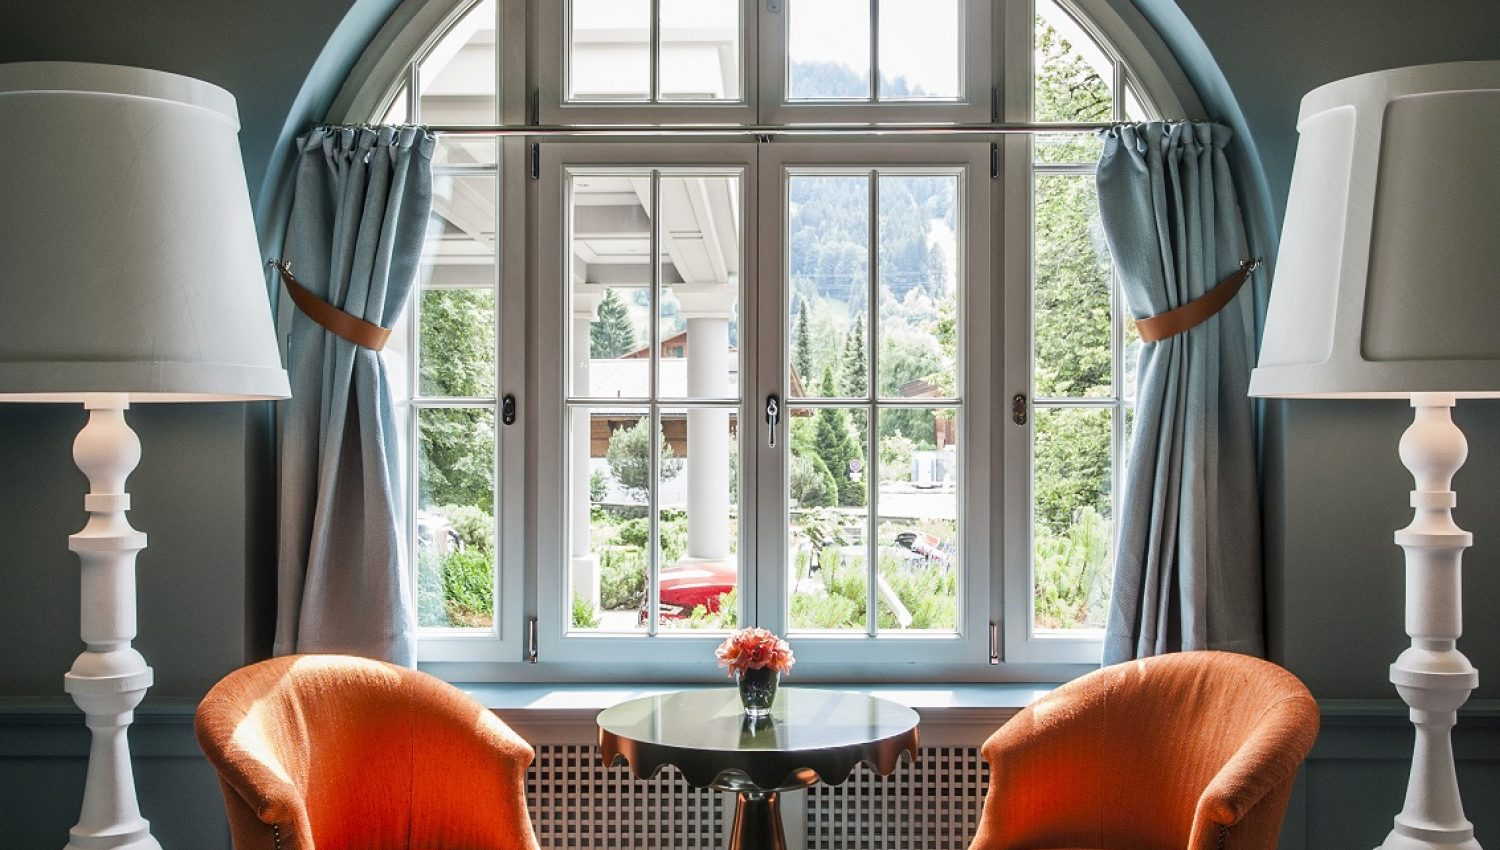 gstaad-hotel-le-grand-bellevue-5